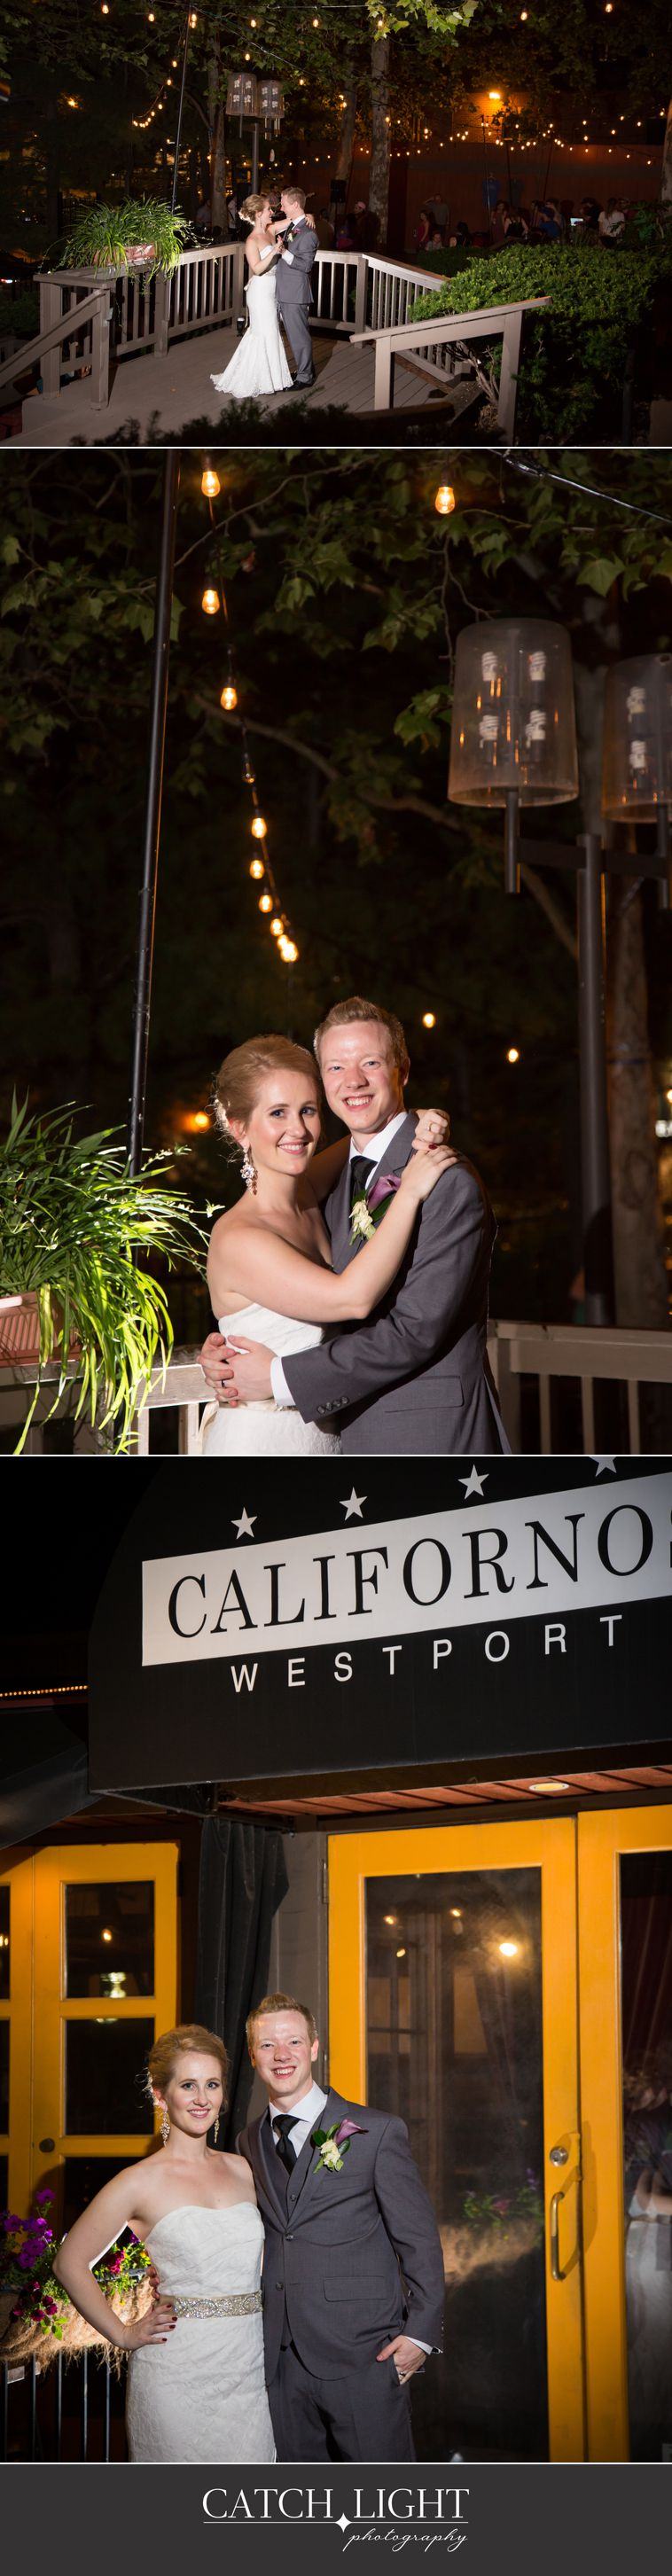 18_Californo's Wedding & Reception